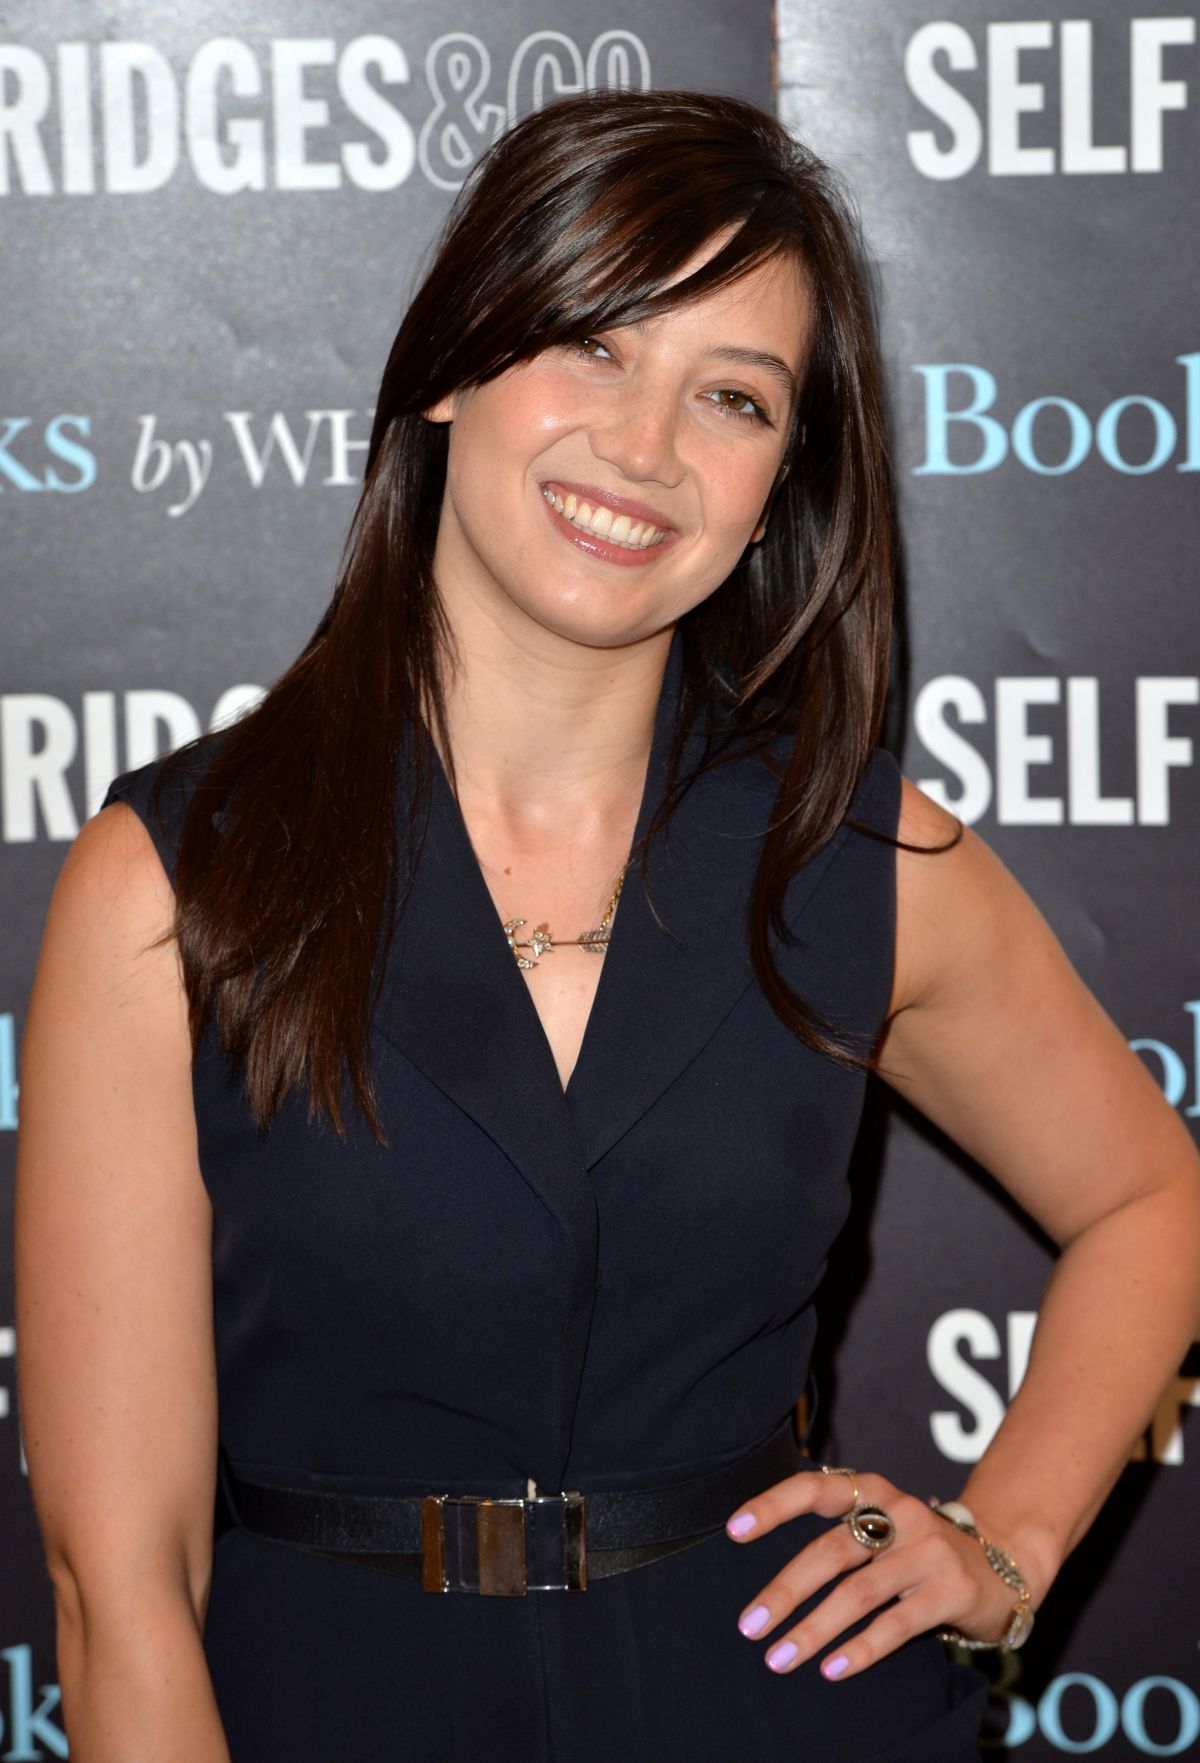 DAISY LOWE at Sweetness and Light Book Signing